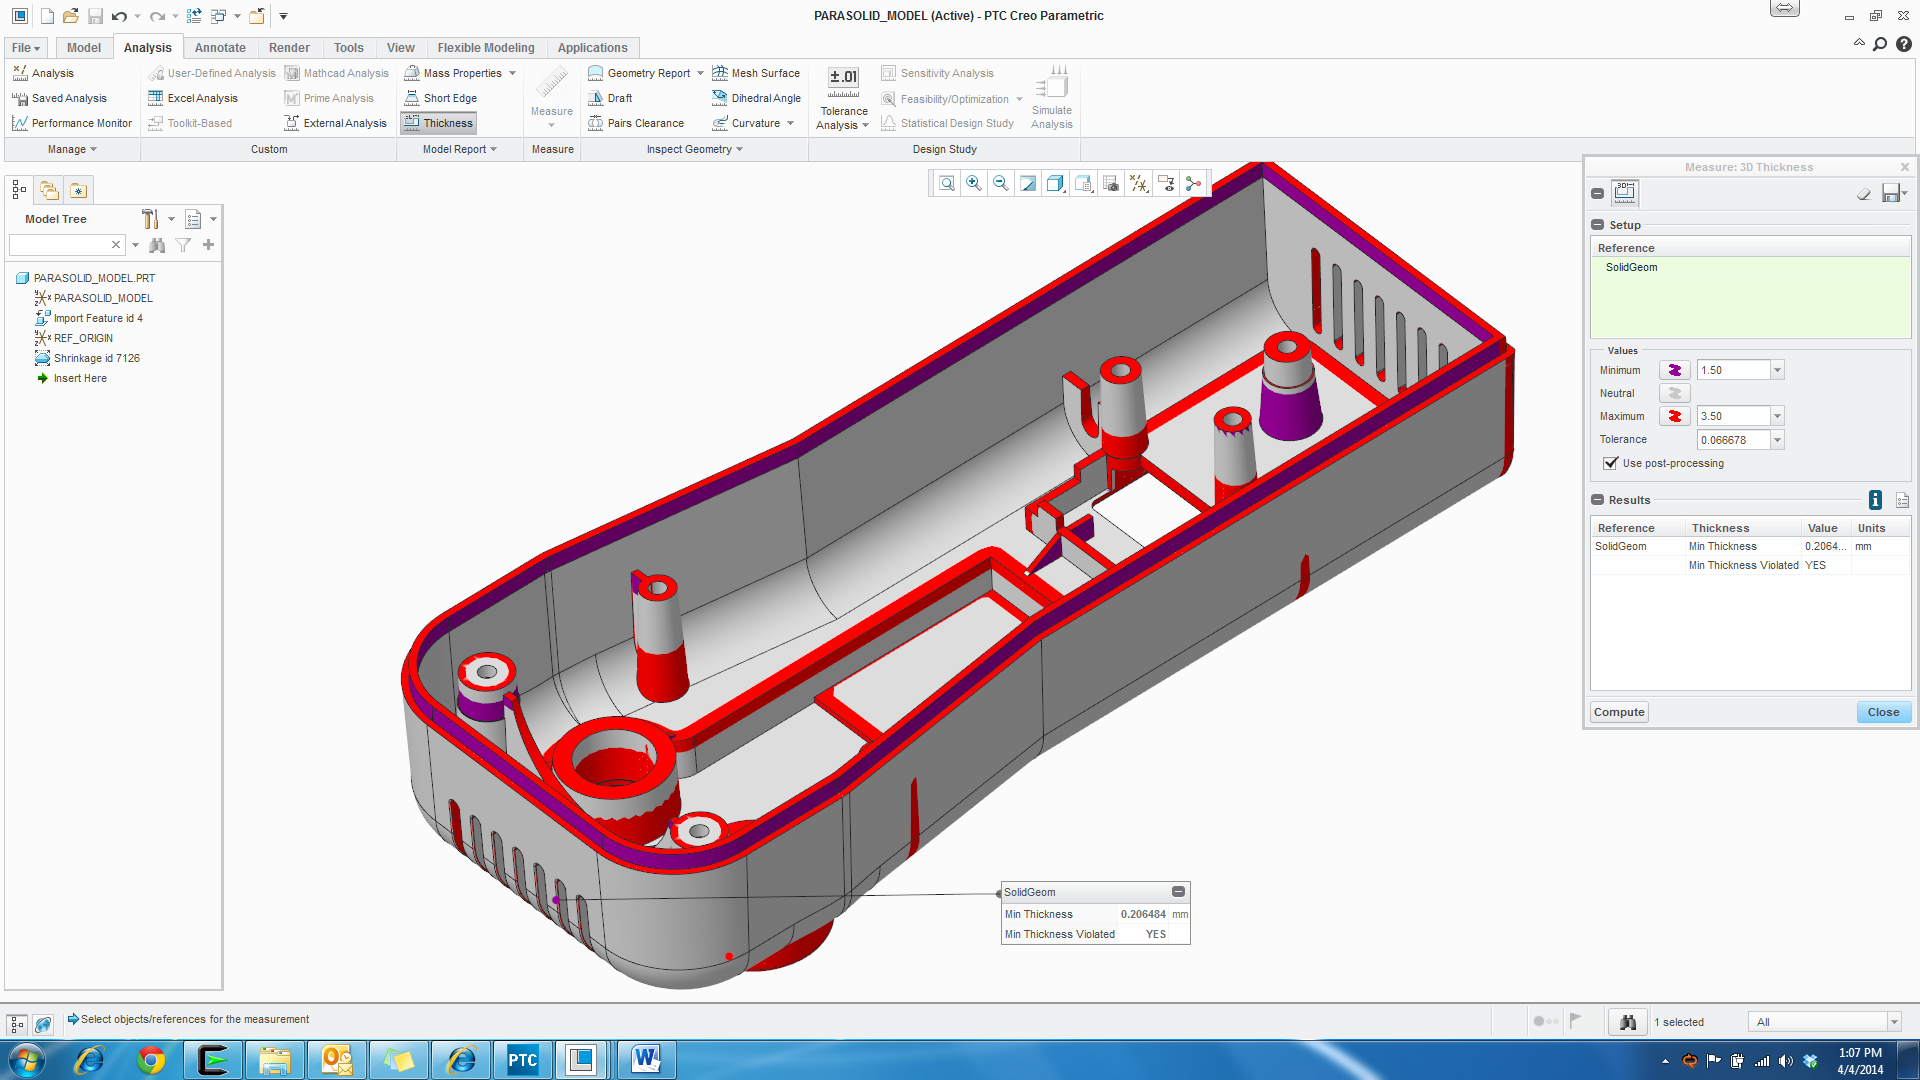 PTC Creo 3.0 with Unite Technology, Multi-CAD Data Handling Capabilities